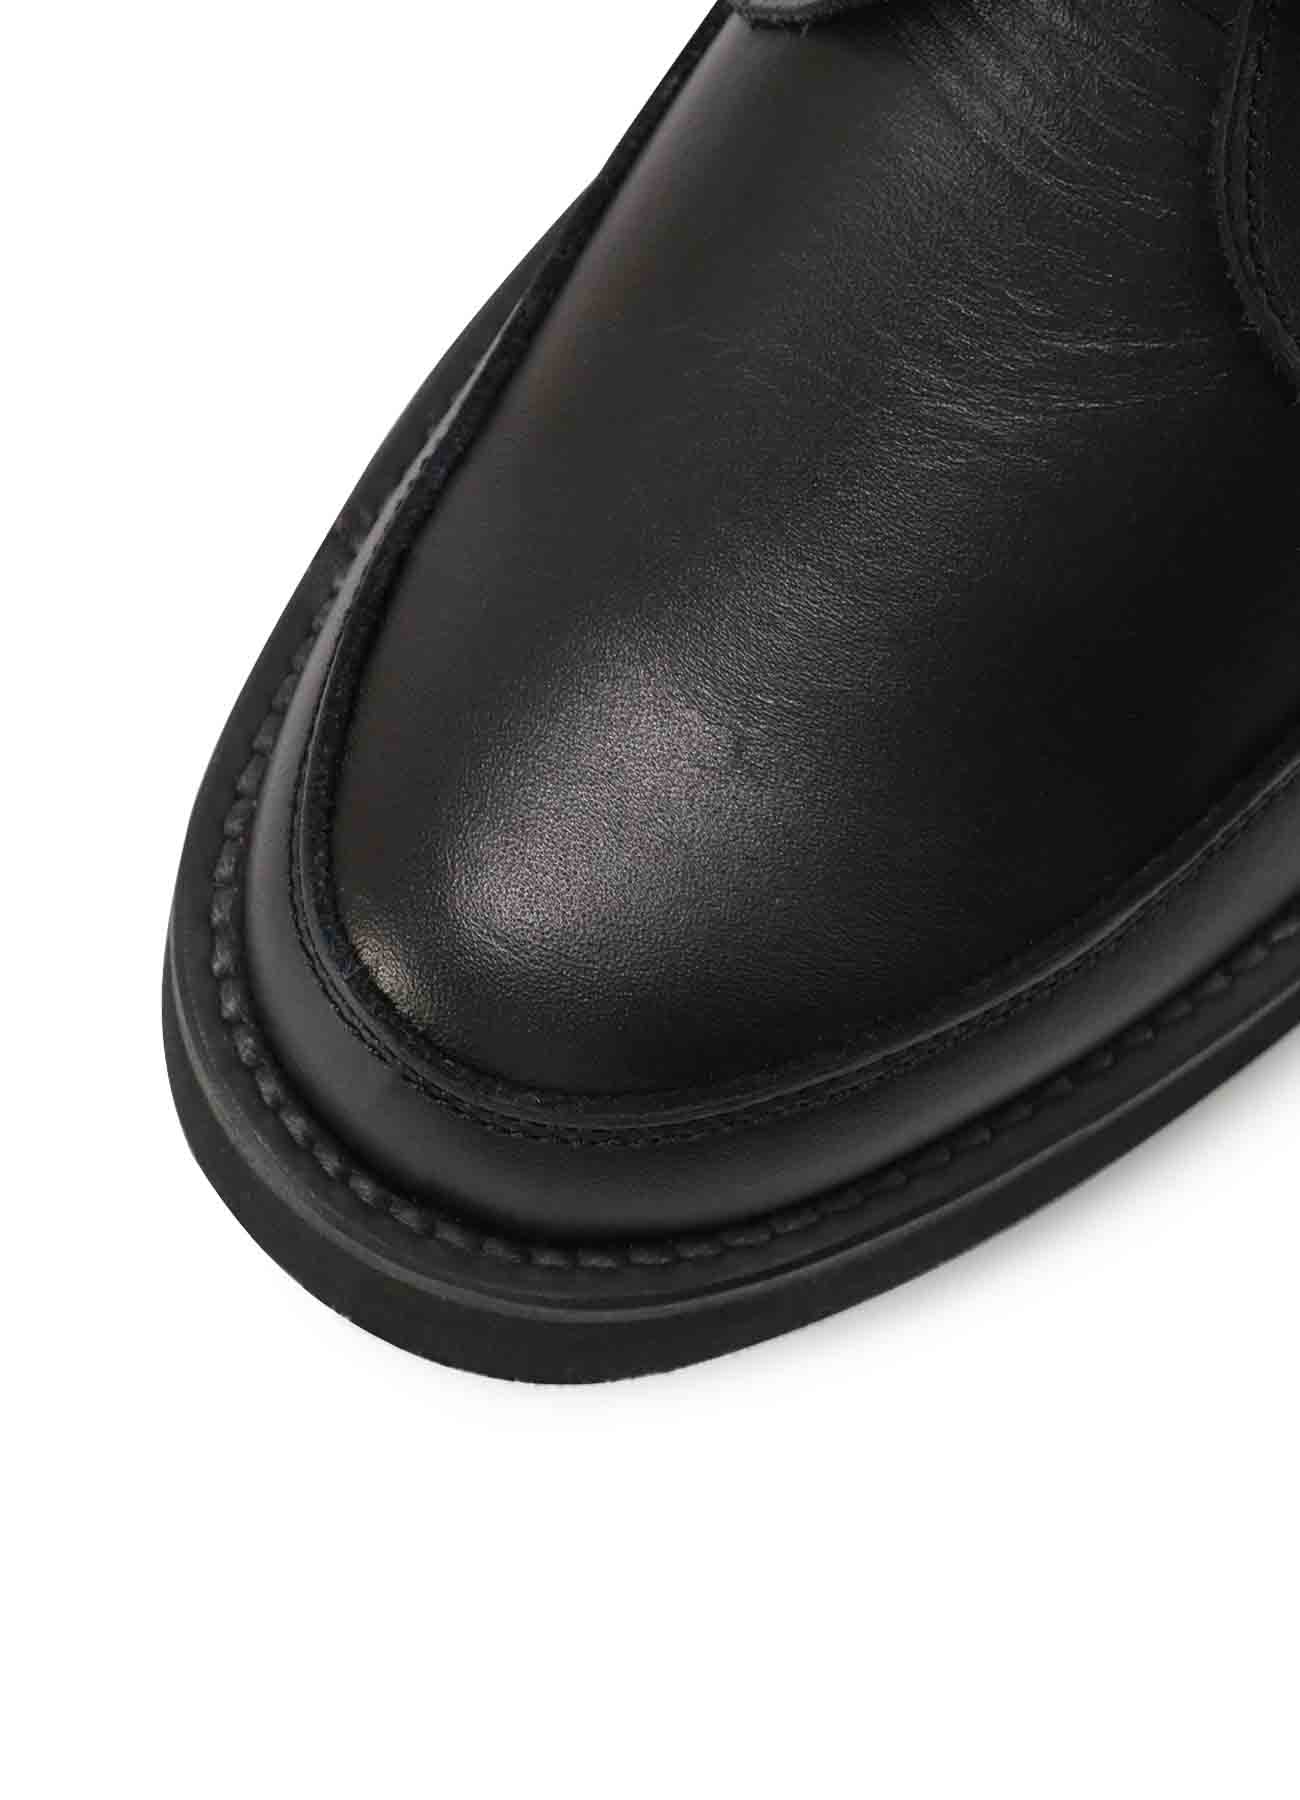 BK SMOOTH LEATHER STRAP BOOTS